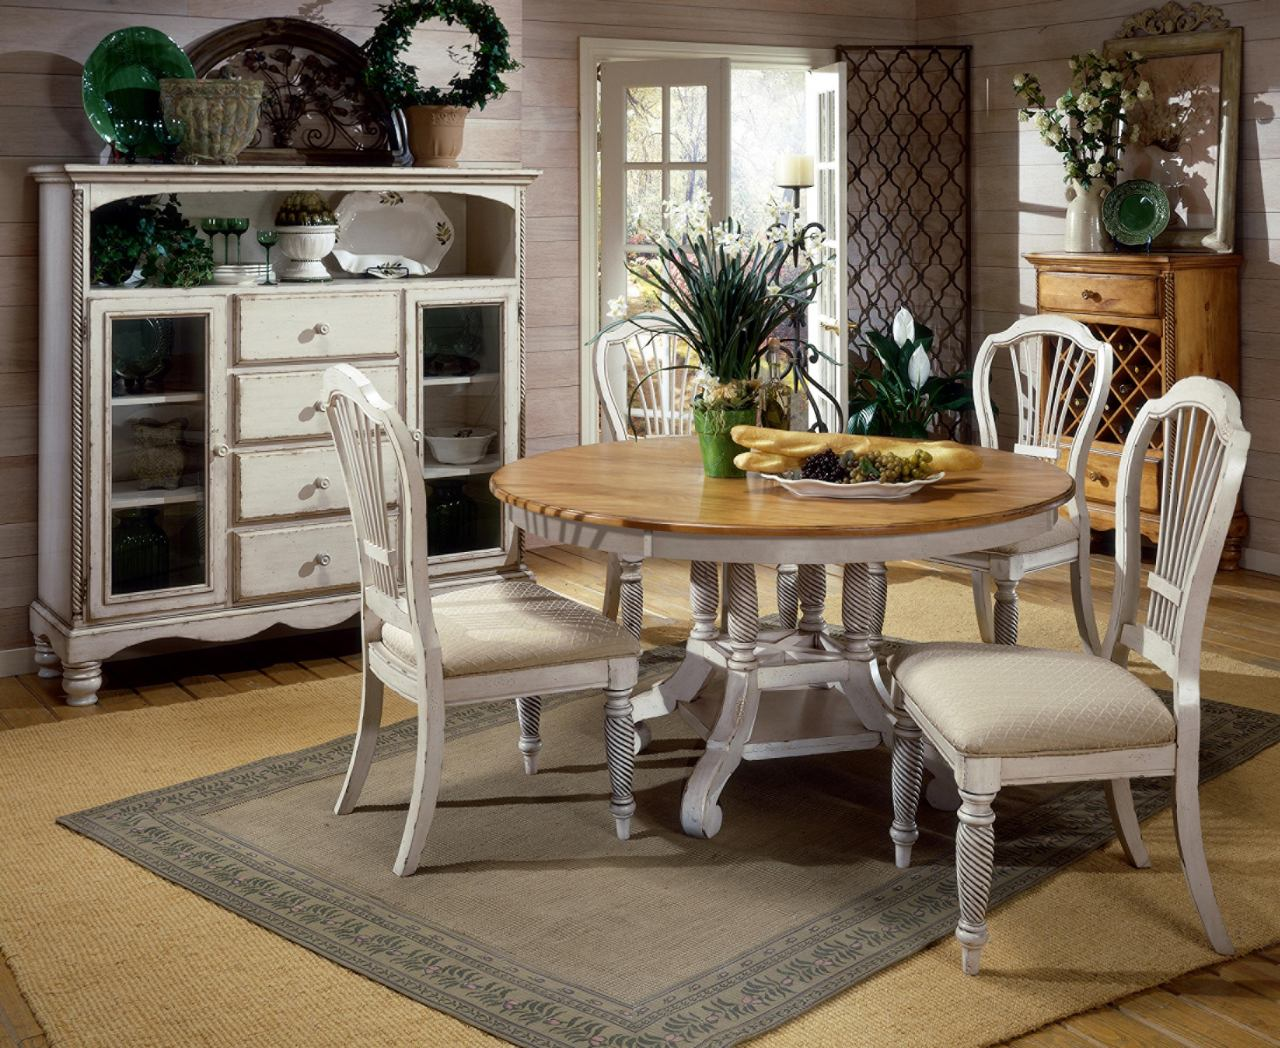 Hillsdale Wilshire 5 Piece Round Dining Set in Antique White